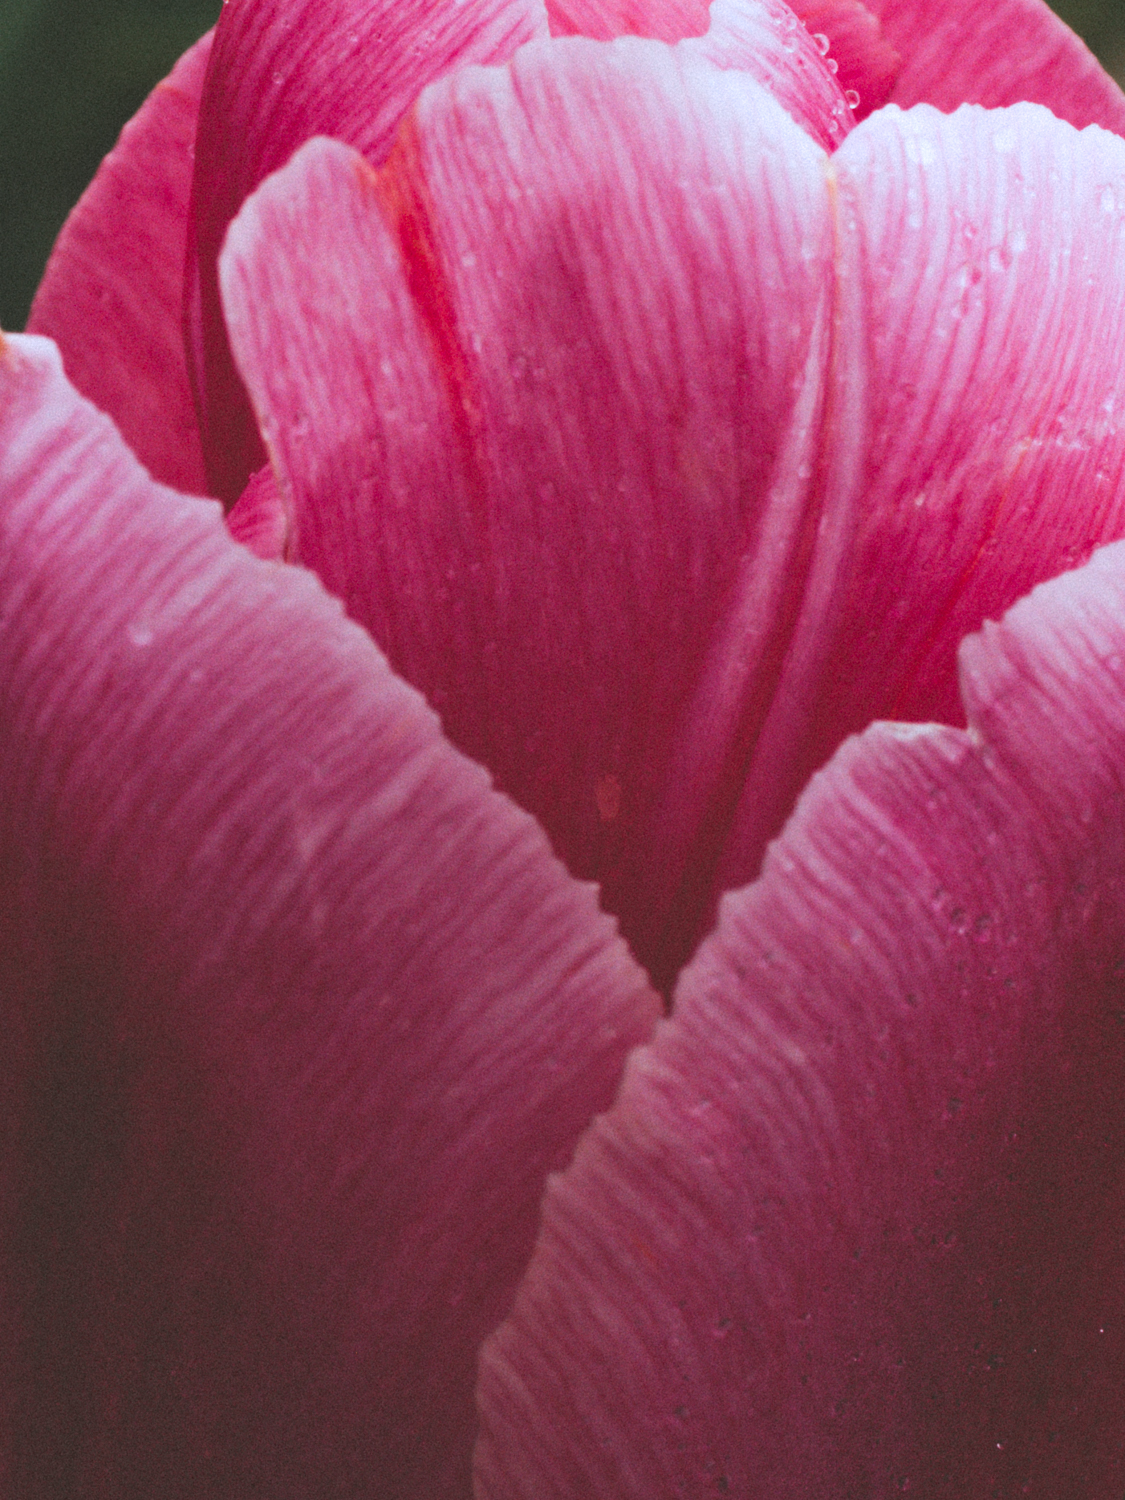 Tulips_Julianadorp-68